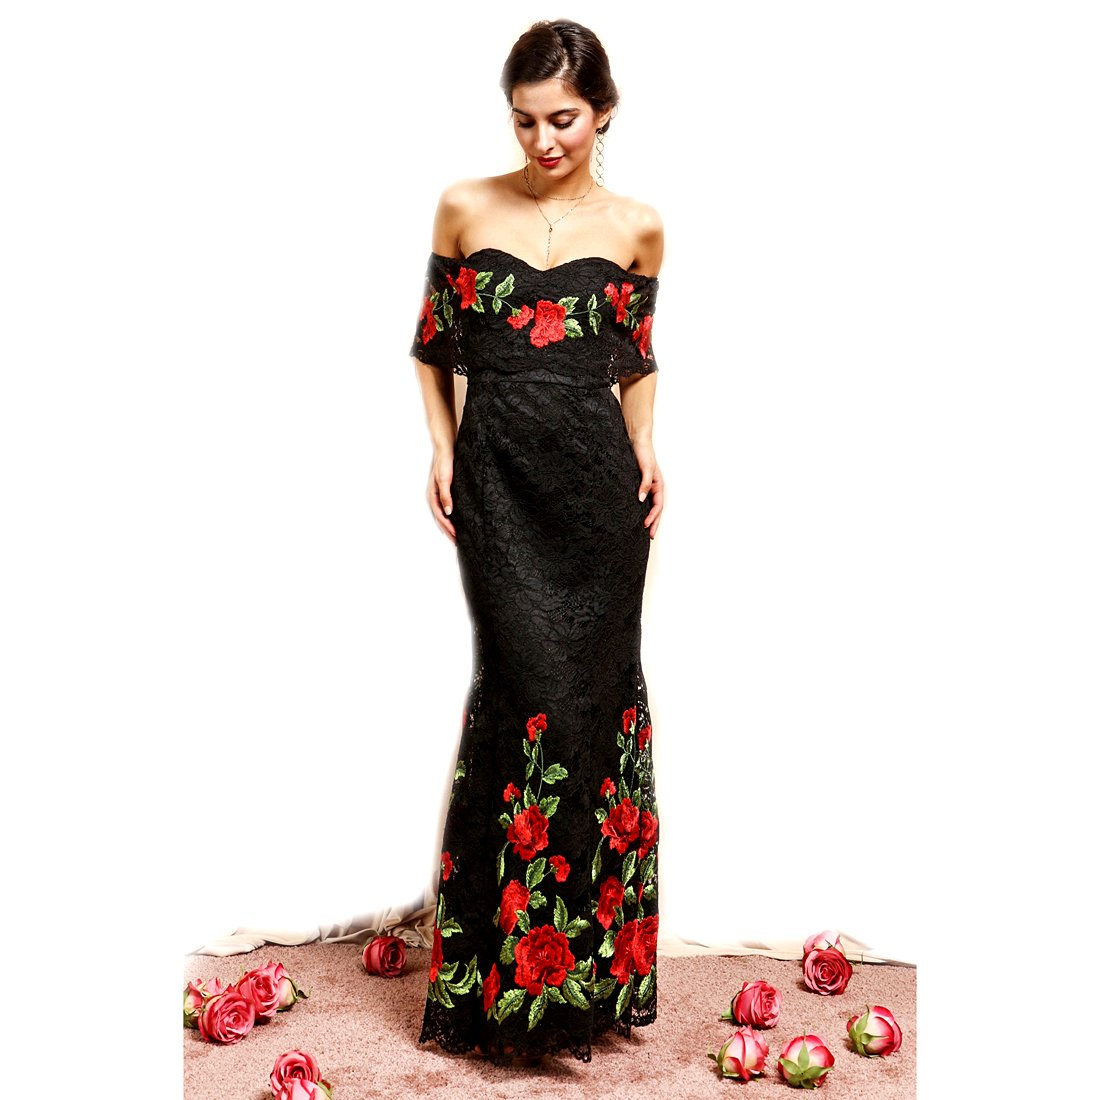 8c72c2dd47 Crazy4Bling Soieblu, Black & Red Embroidered Floral Off-The-Shoulder Maxi  Dress, Small at Amazon Women's Clothing store: